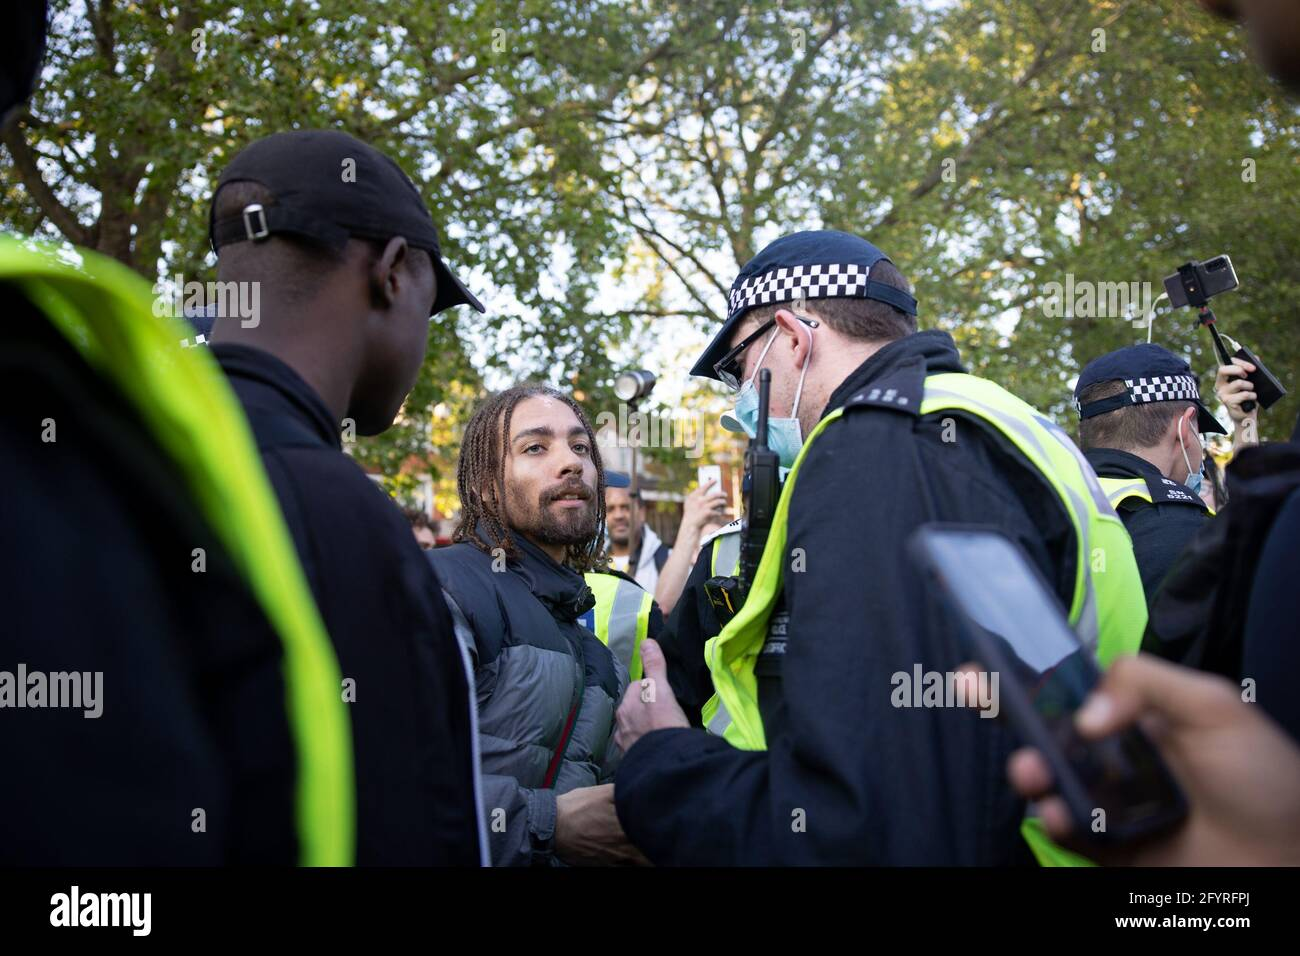 London, UK. 29th May, 2021. Unite For Freedom Protest, London, UK Credit: Yuen Ching Ng/Alamy Live News Stock Photo